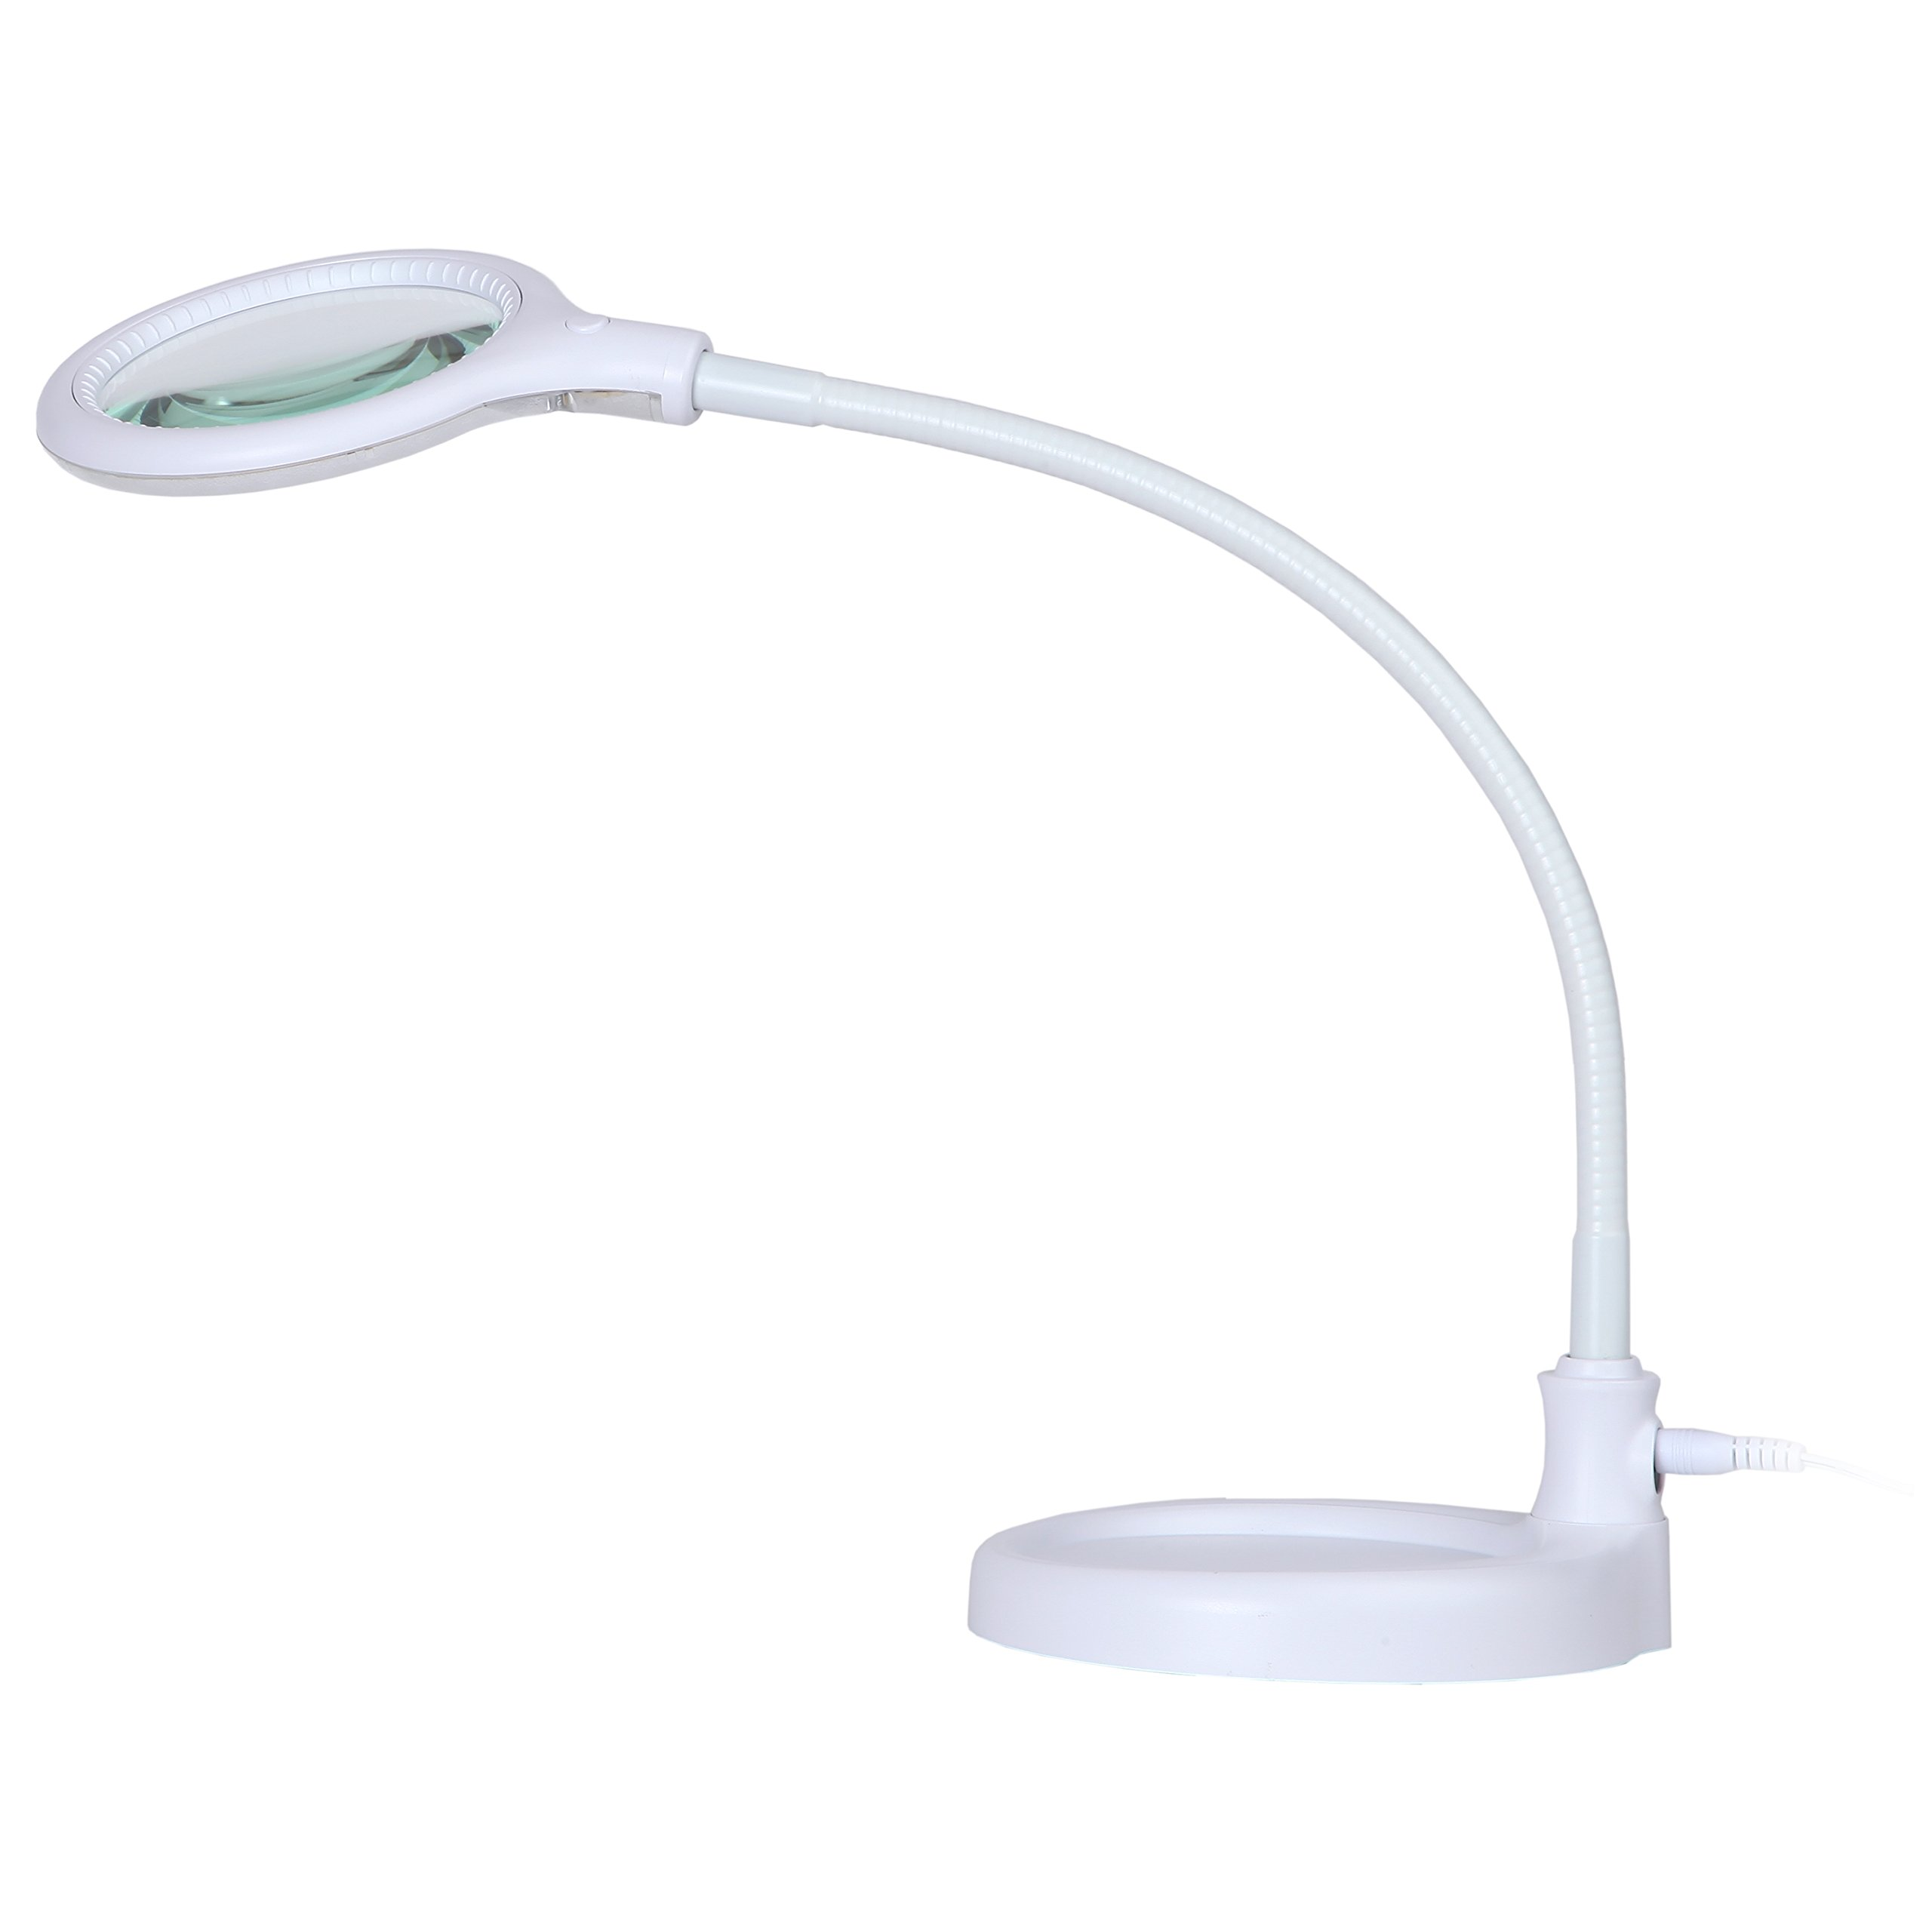 instrument arm lamp co hongbo group ltd optical tqxemugbynvh ningbo catalog with page magnifier led product